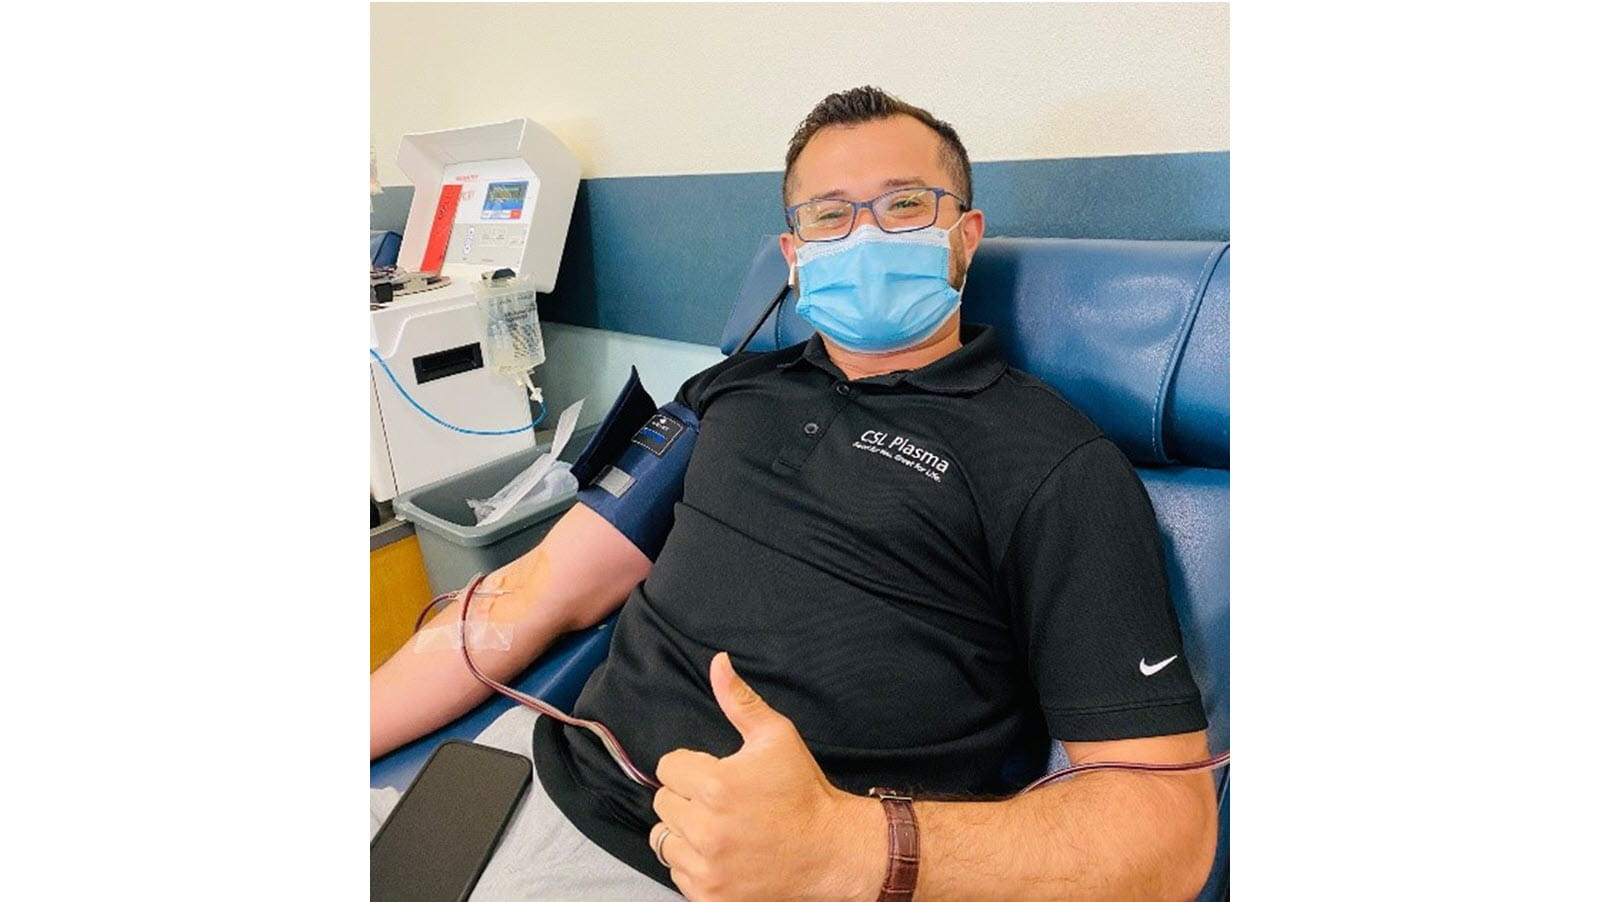 Jose Pineda gives a thumbs up sign while donating plasma